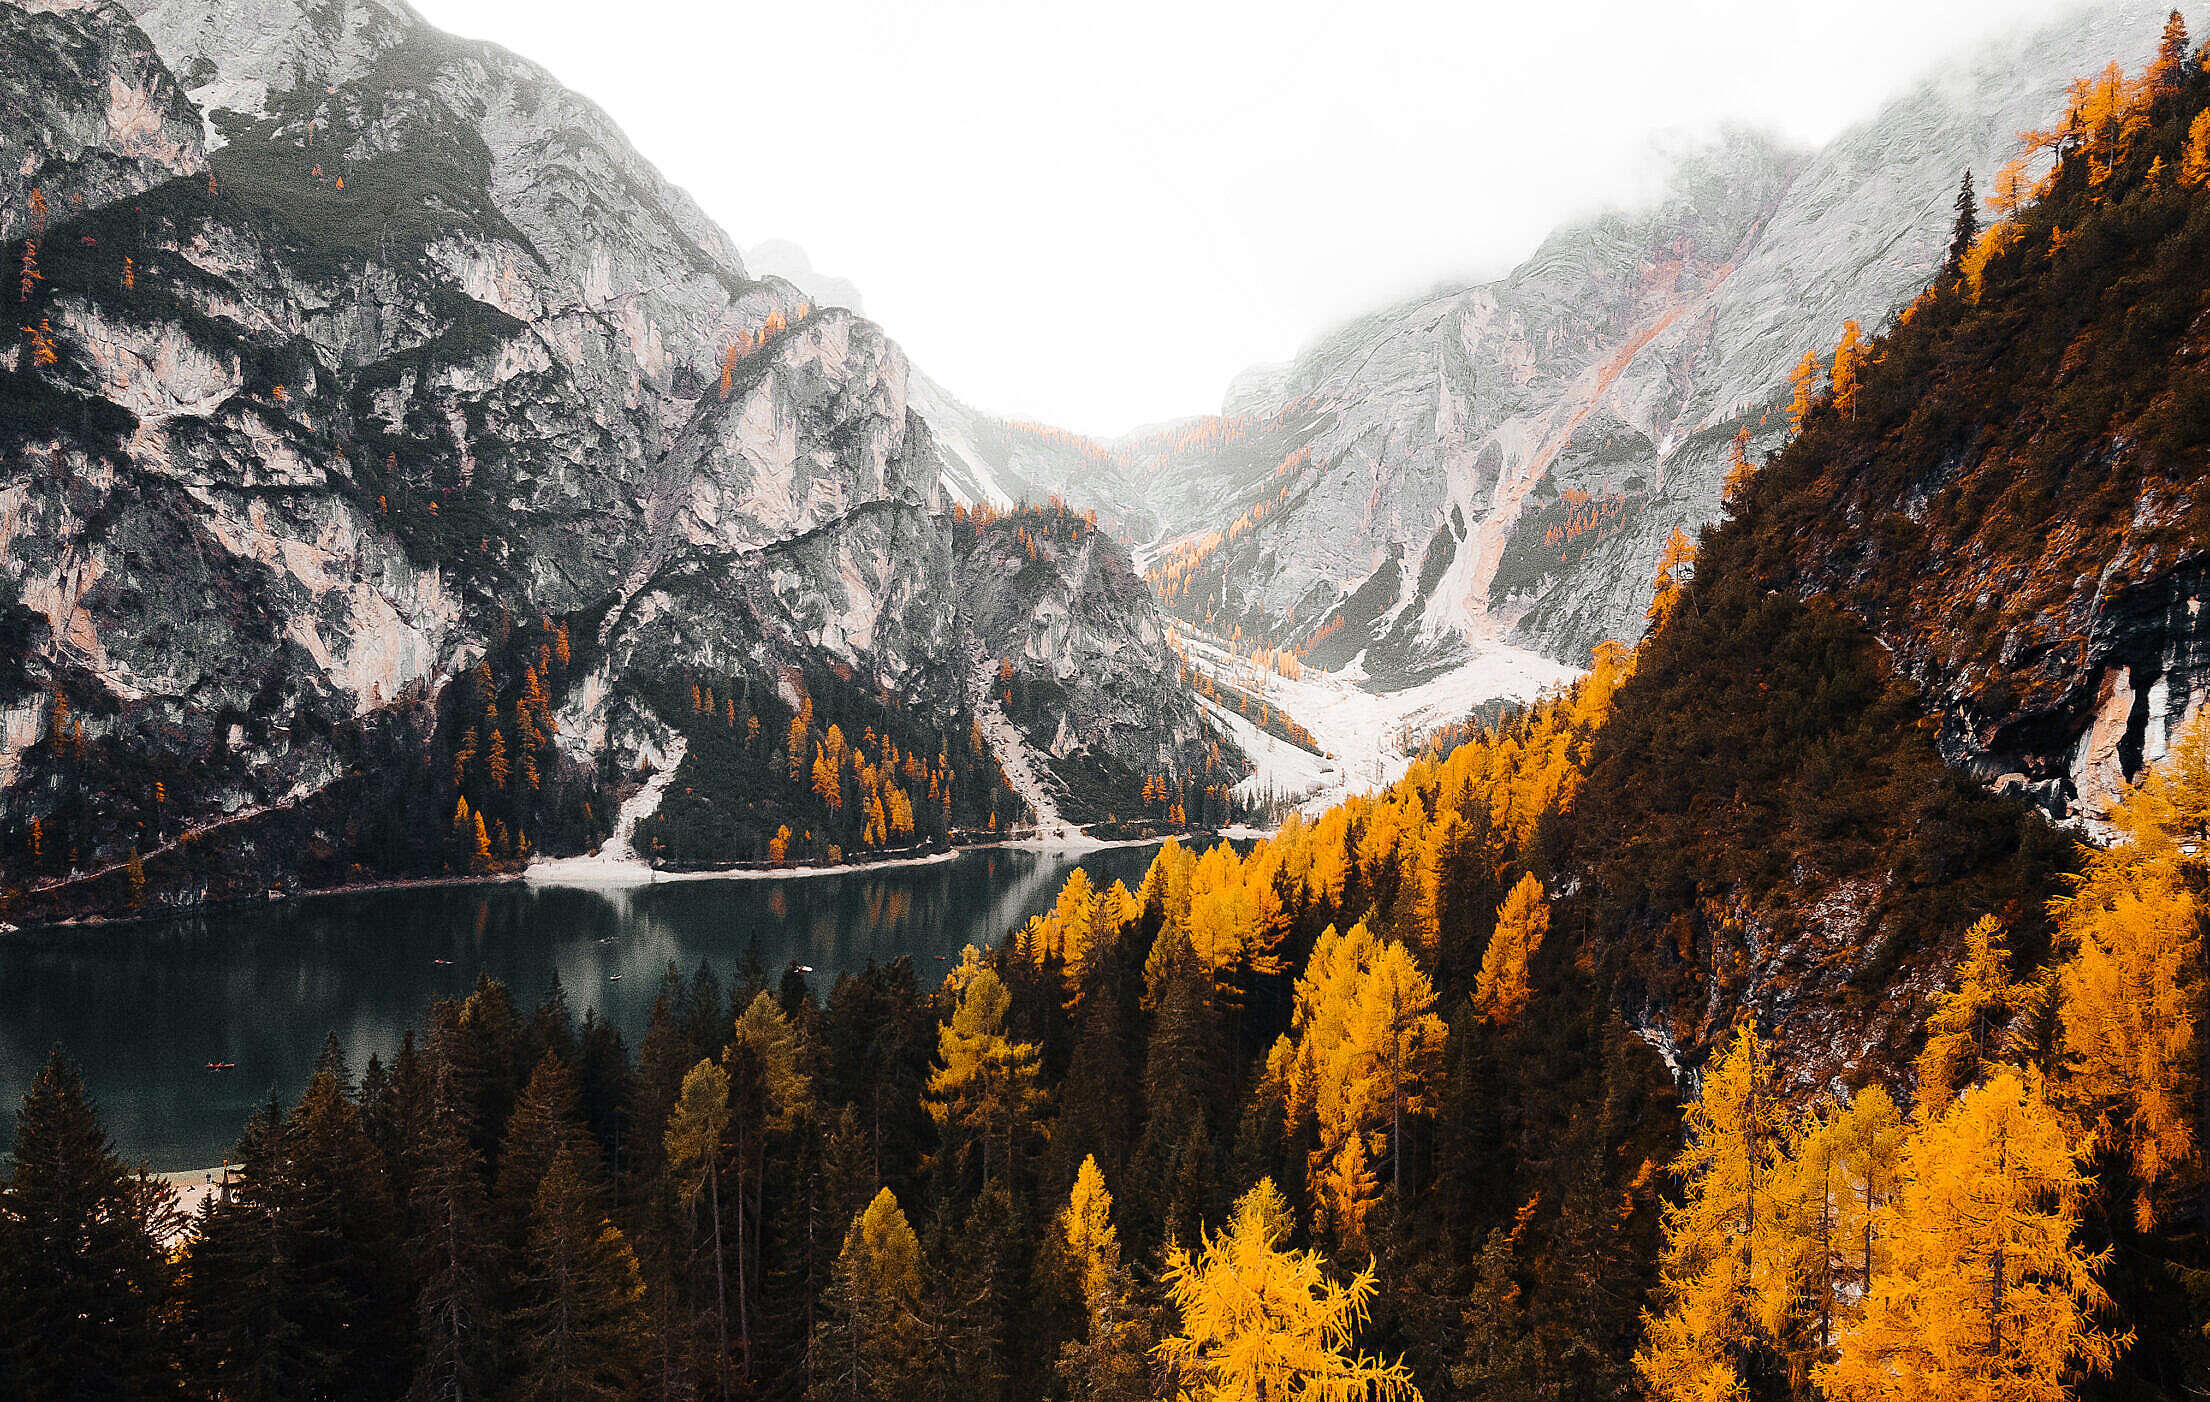 Wonderful Mountains in Fall Colors Free Stock Photo